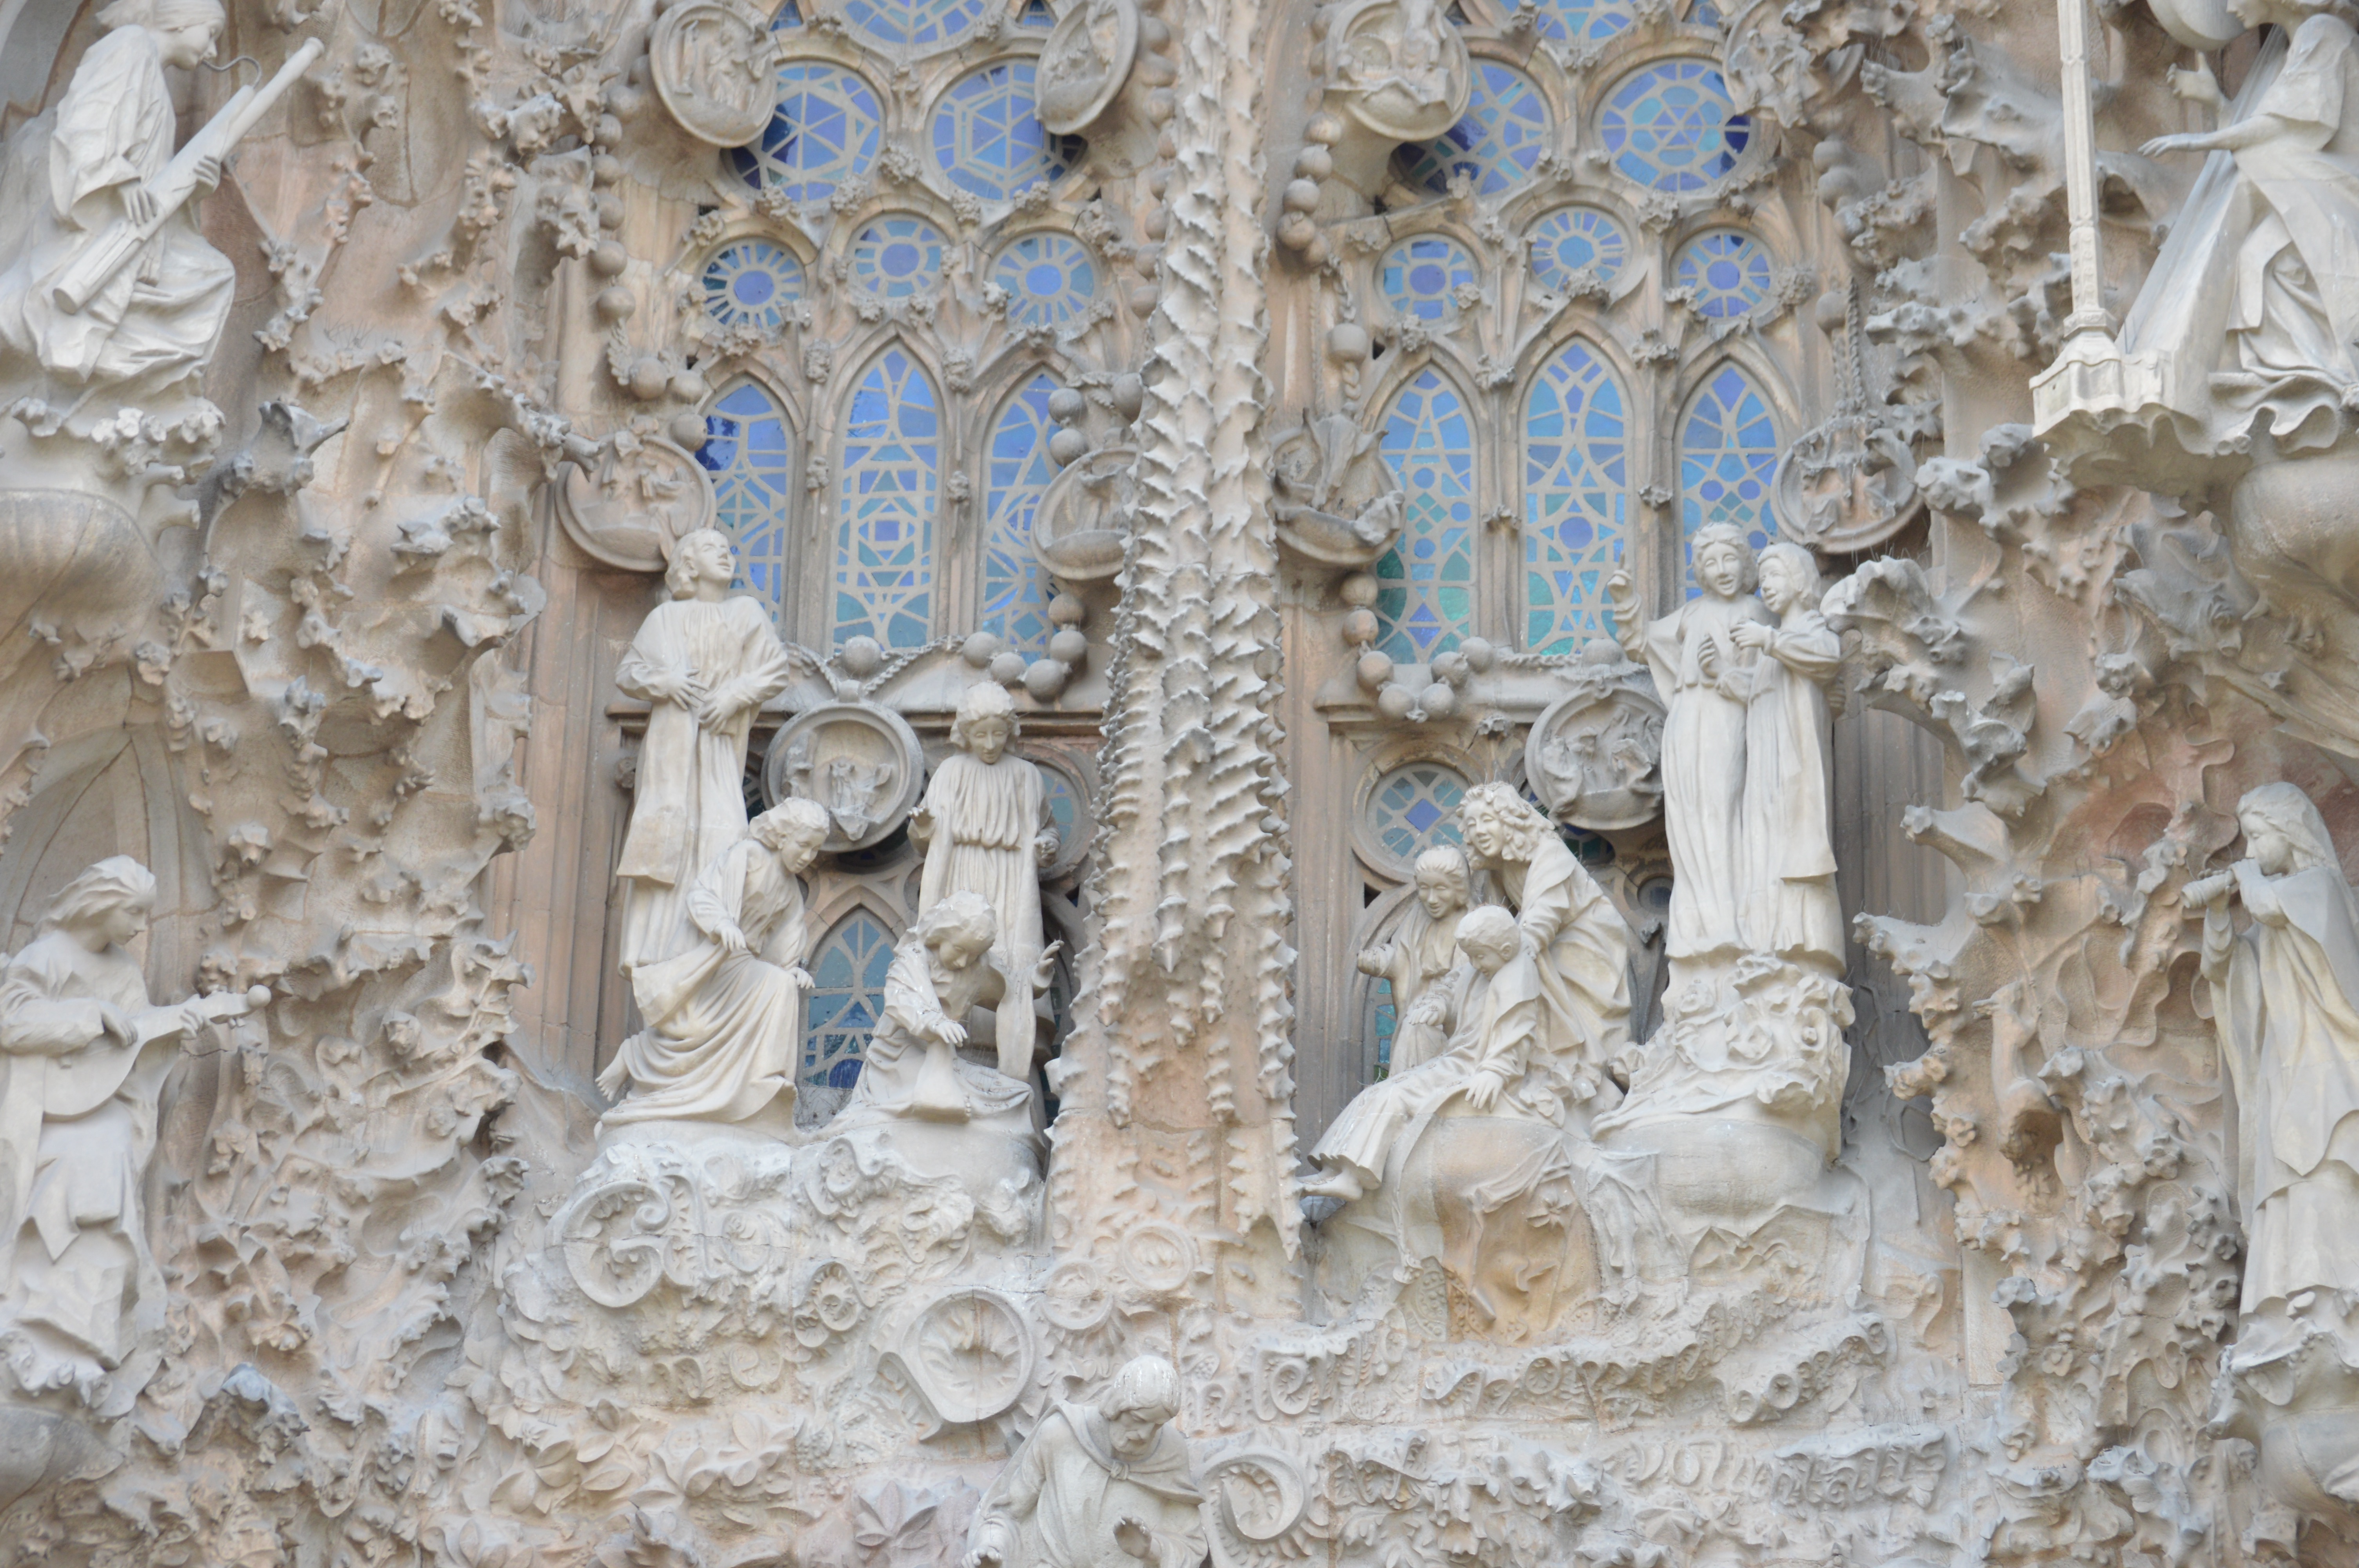 Proctor en Segovia visits the Sagrada Familia in Barcelona